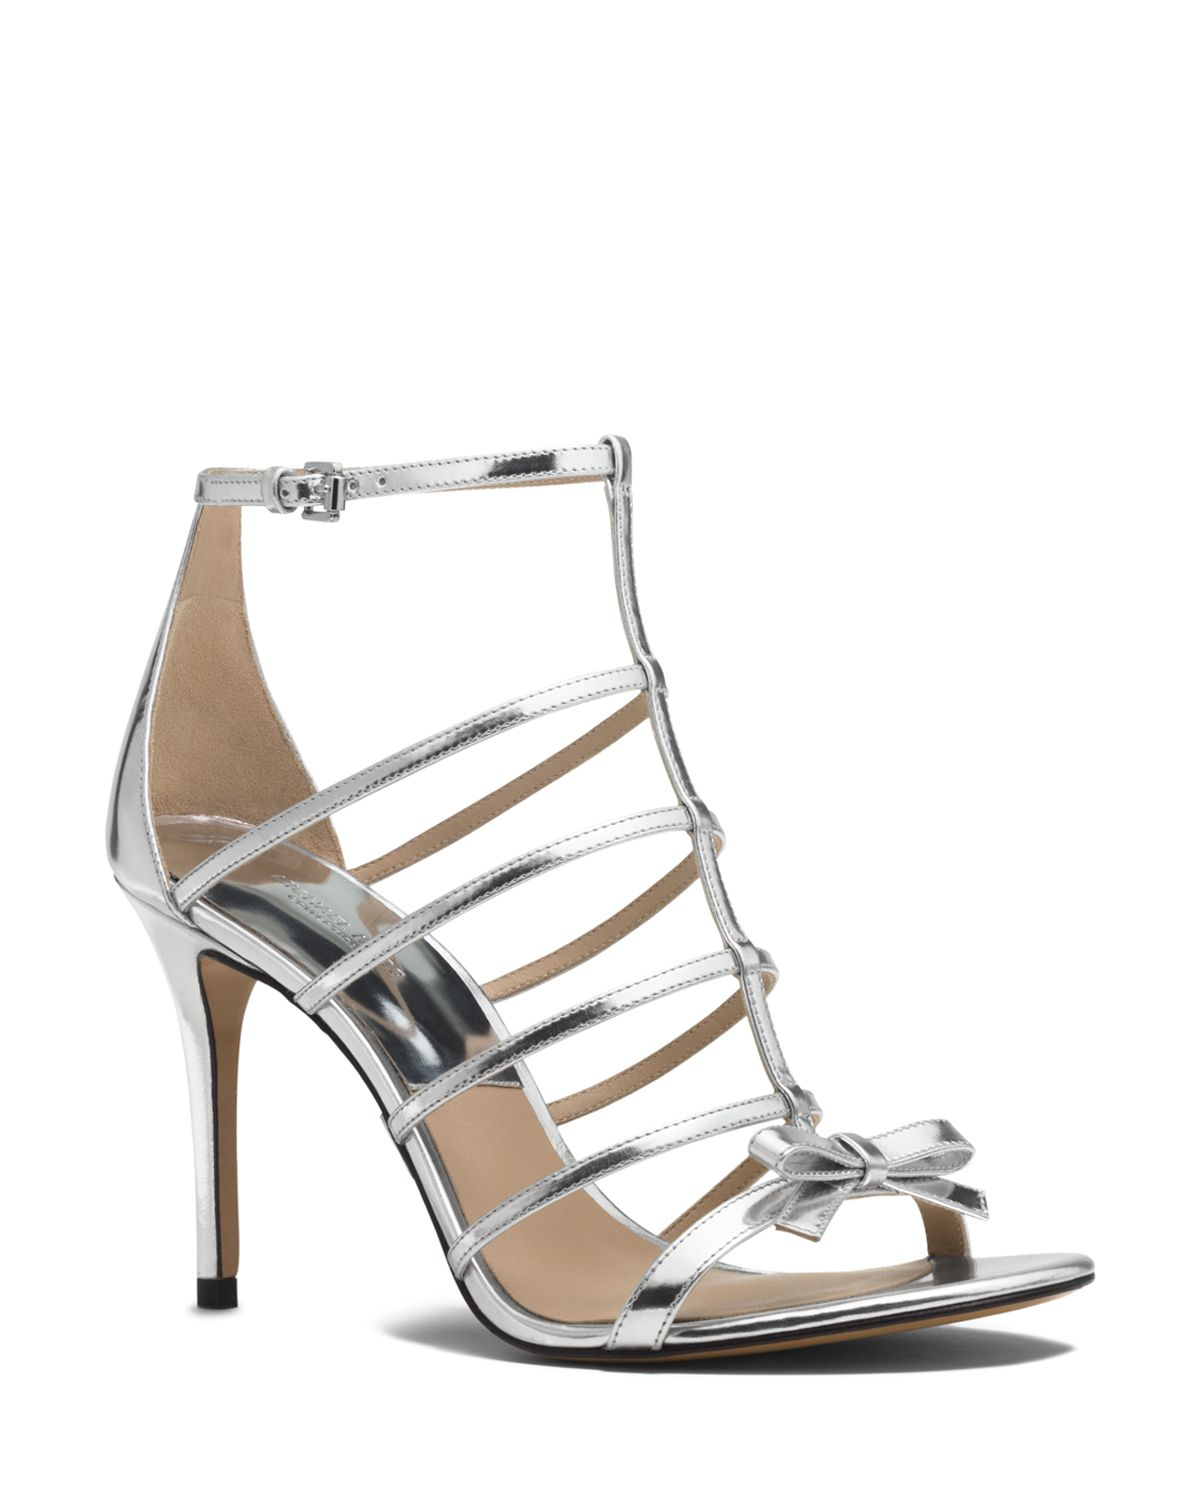 Womens High Heels Michael Kors Ankle Strap Sandals Blythe Caged Patent High Heels Heels 2016 Sale Outlet